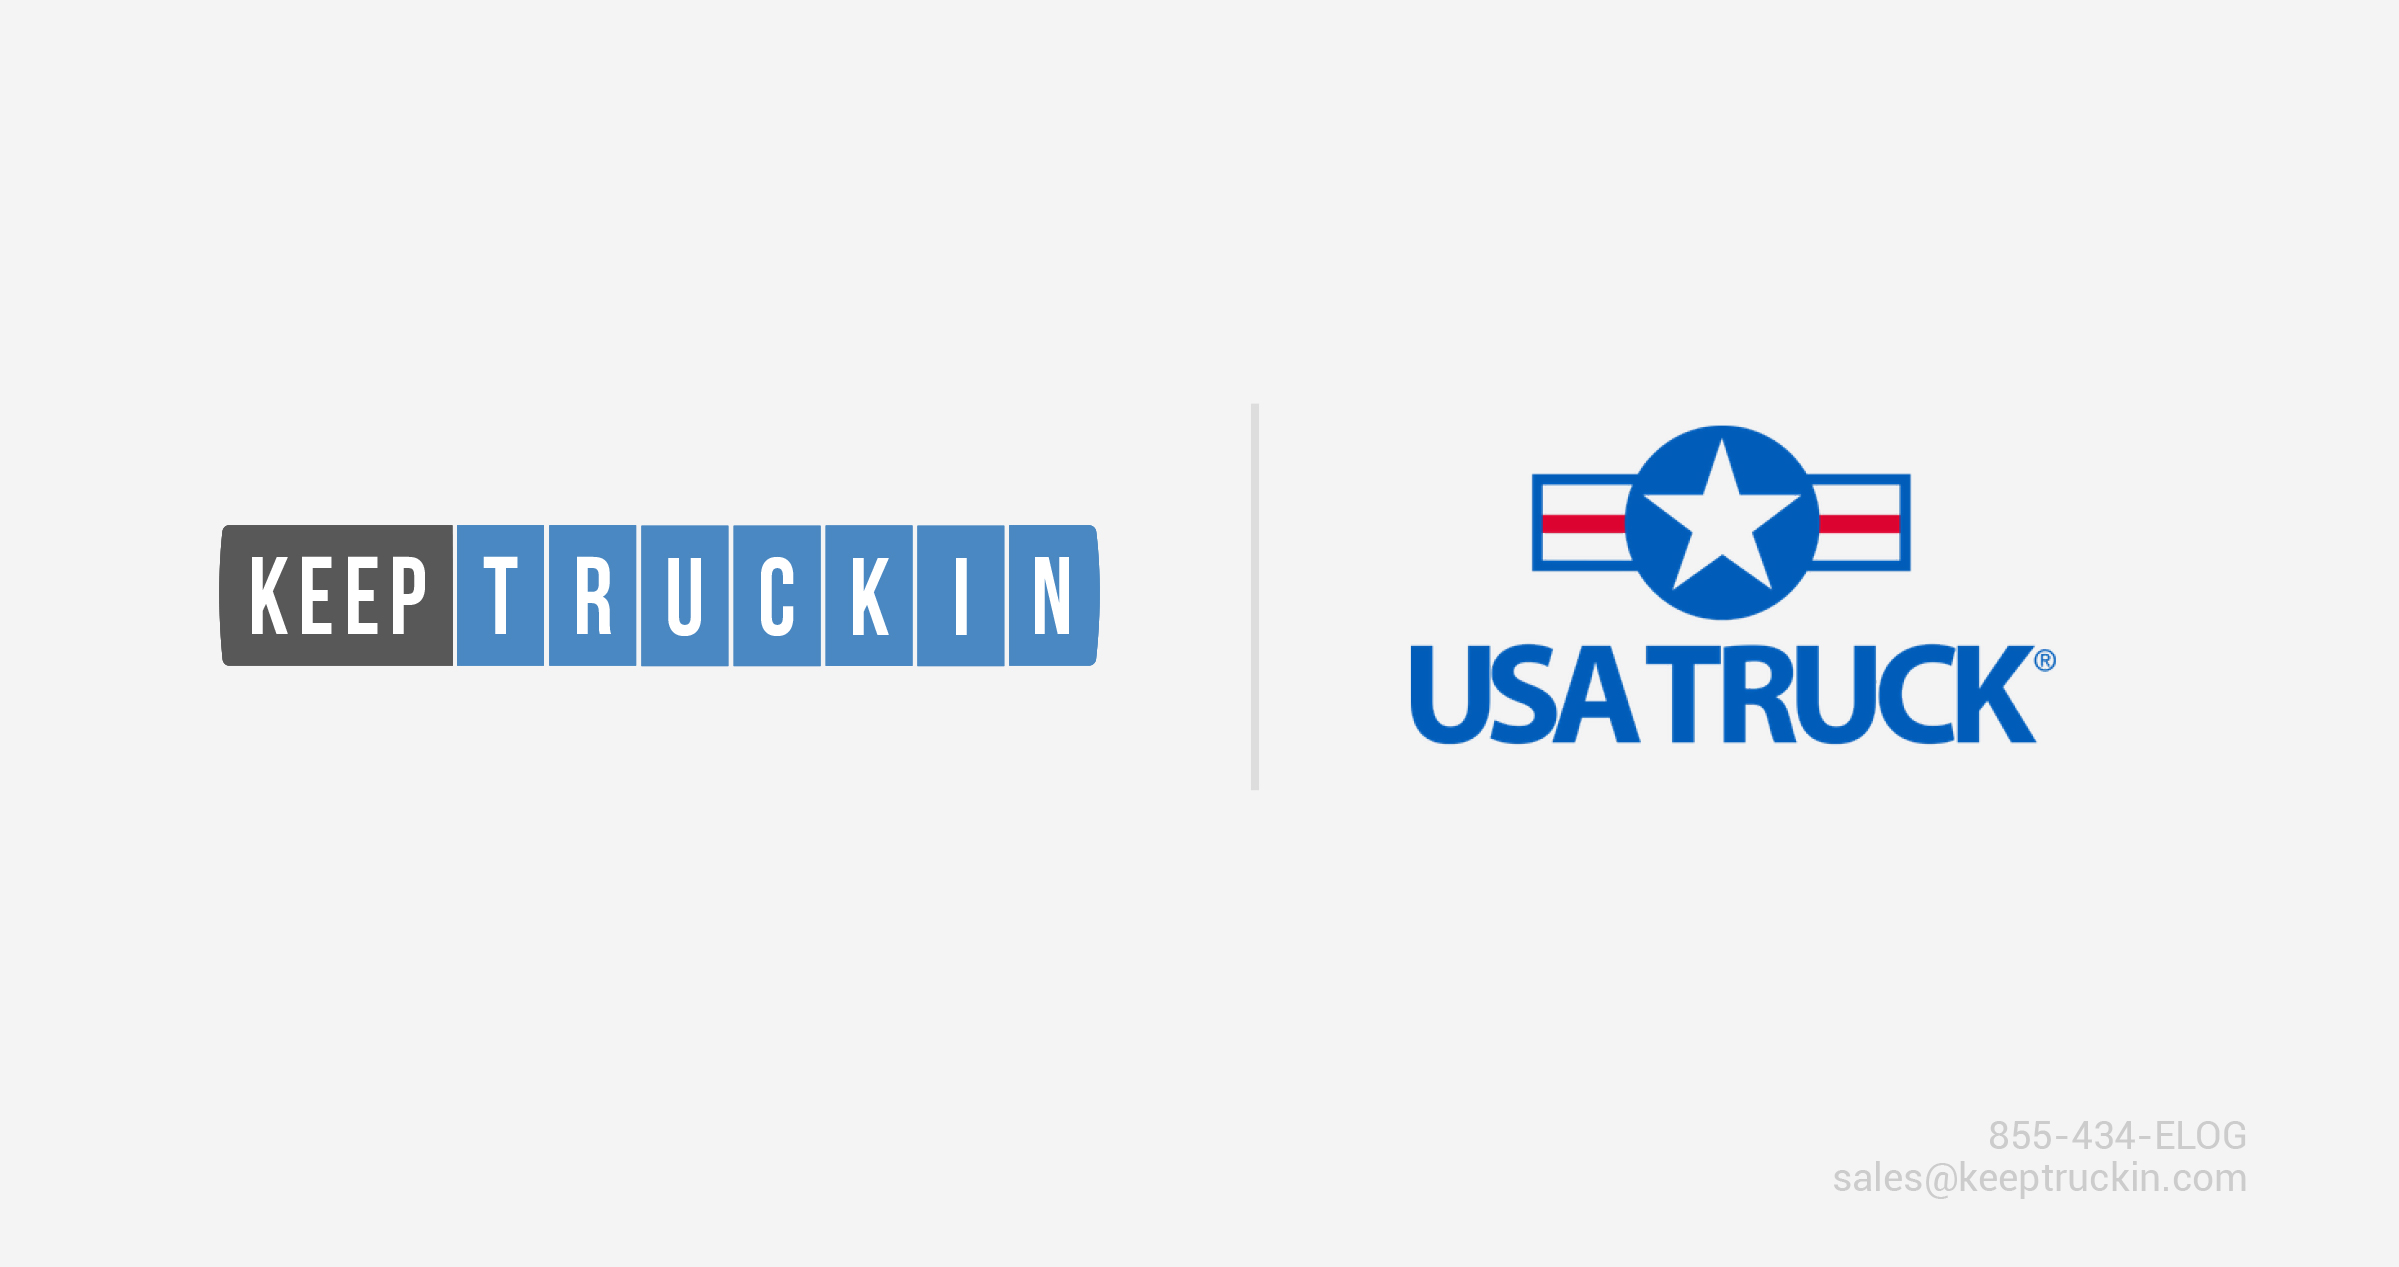 USA Truck Partners With KeepTruckin to Help Carriers With ELD Mandate